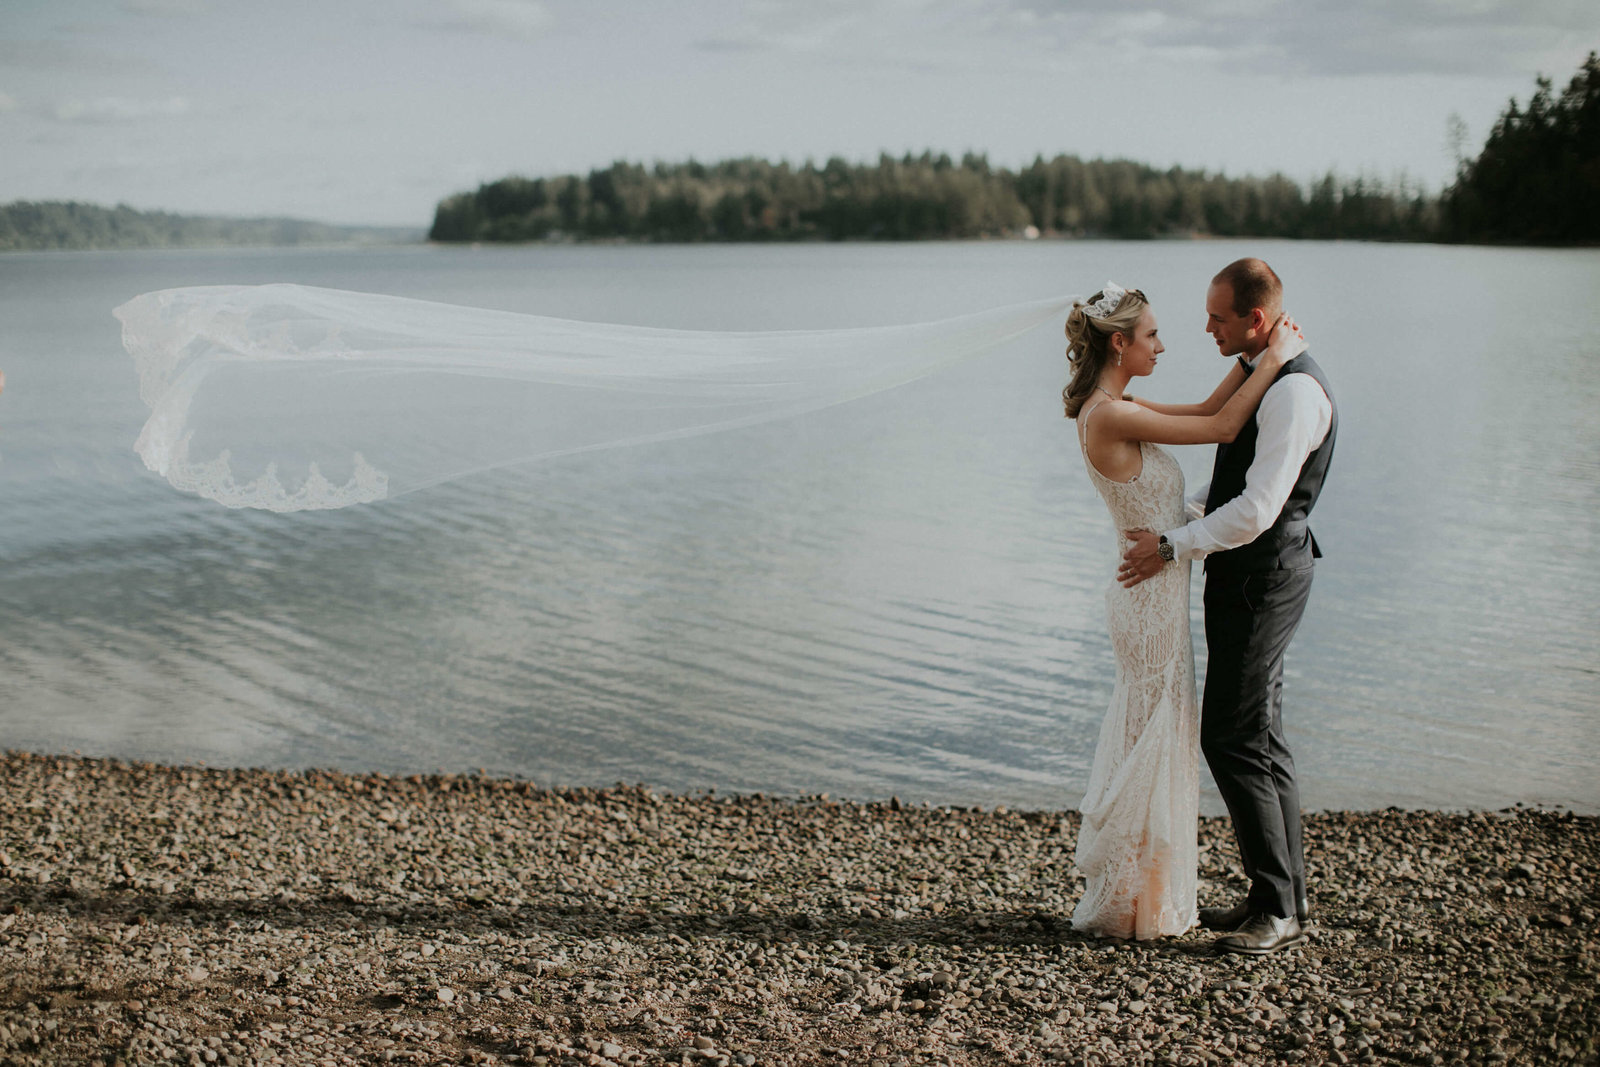 anderson-island-wedding-Seattle-by-Adina-Preston-Photography-2019-137